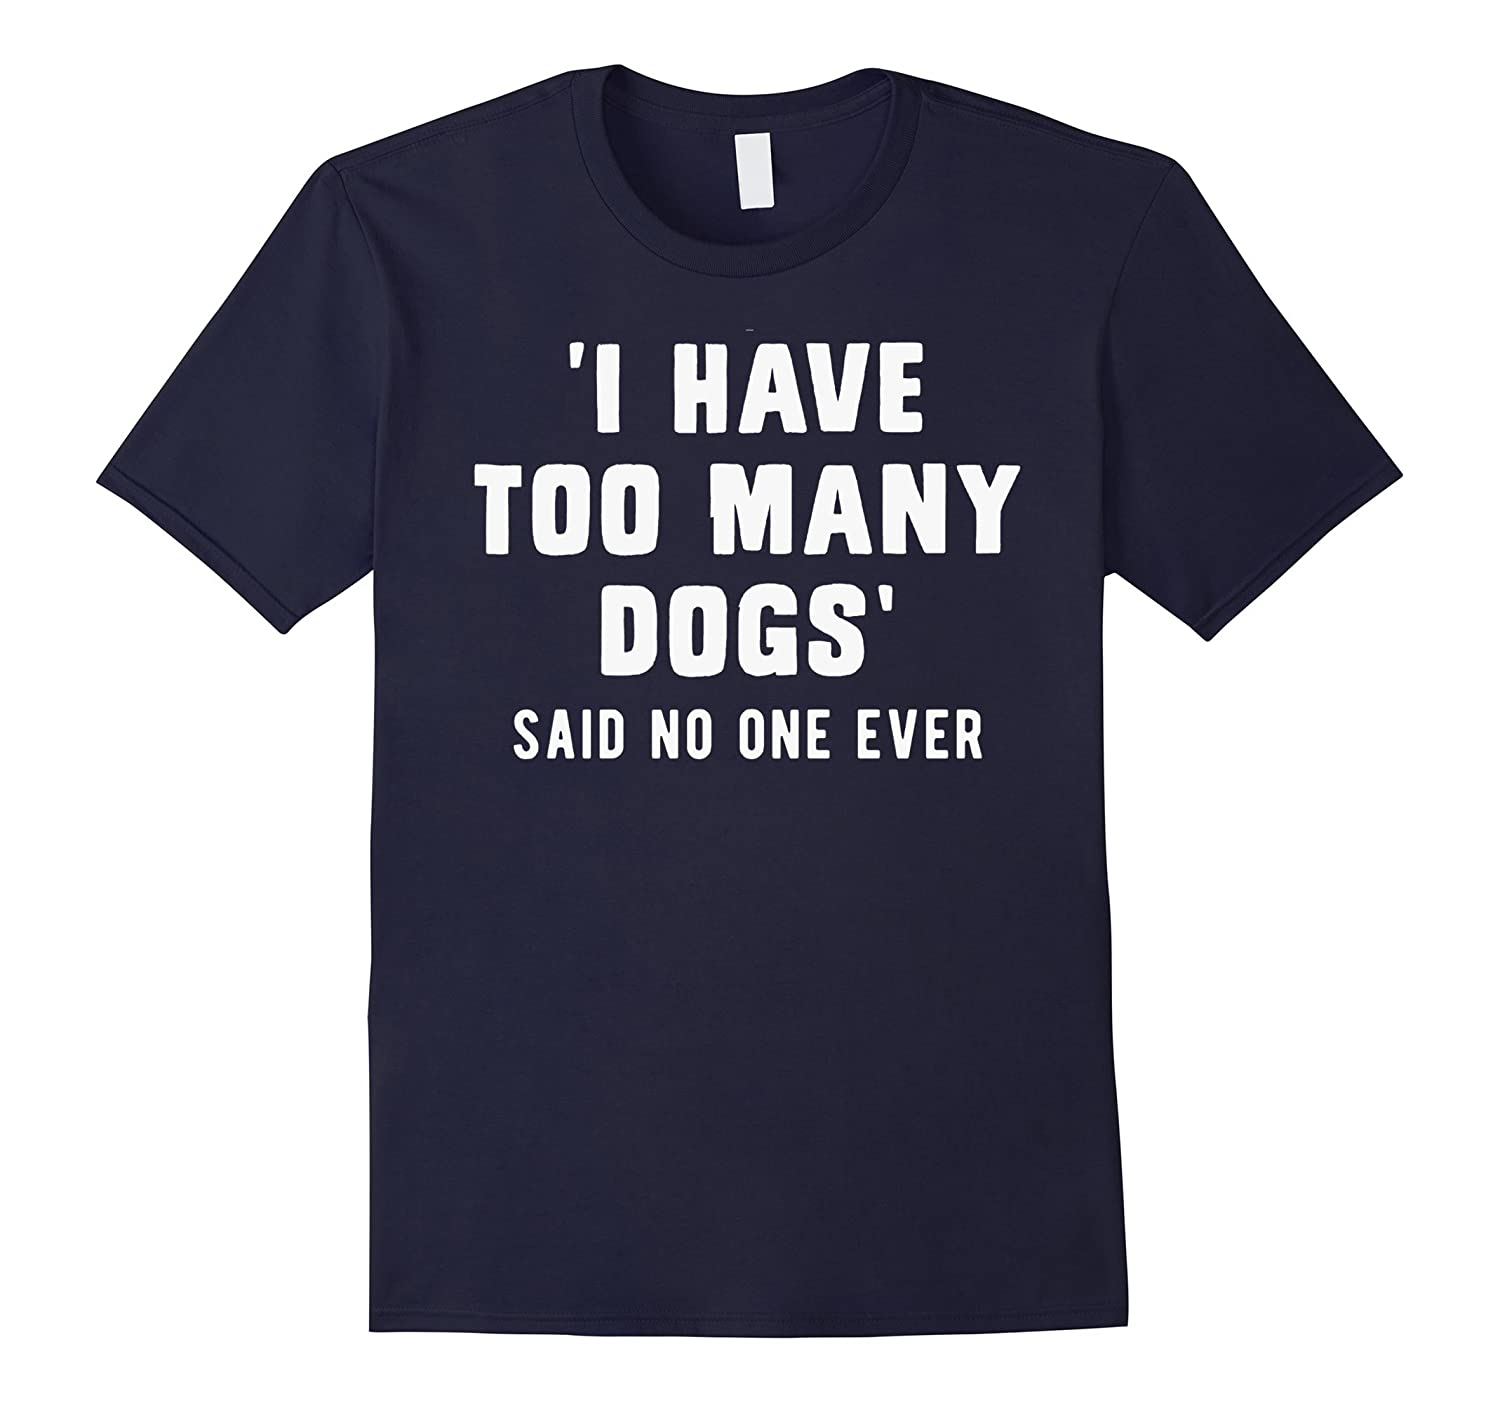 'I have too many dogs', said no one ever, funny t-shirt-CL